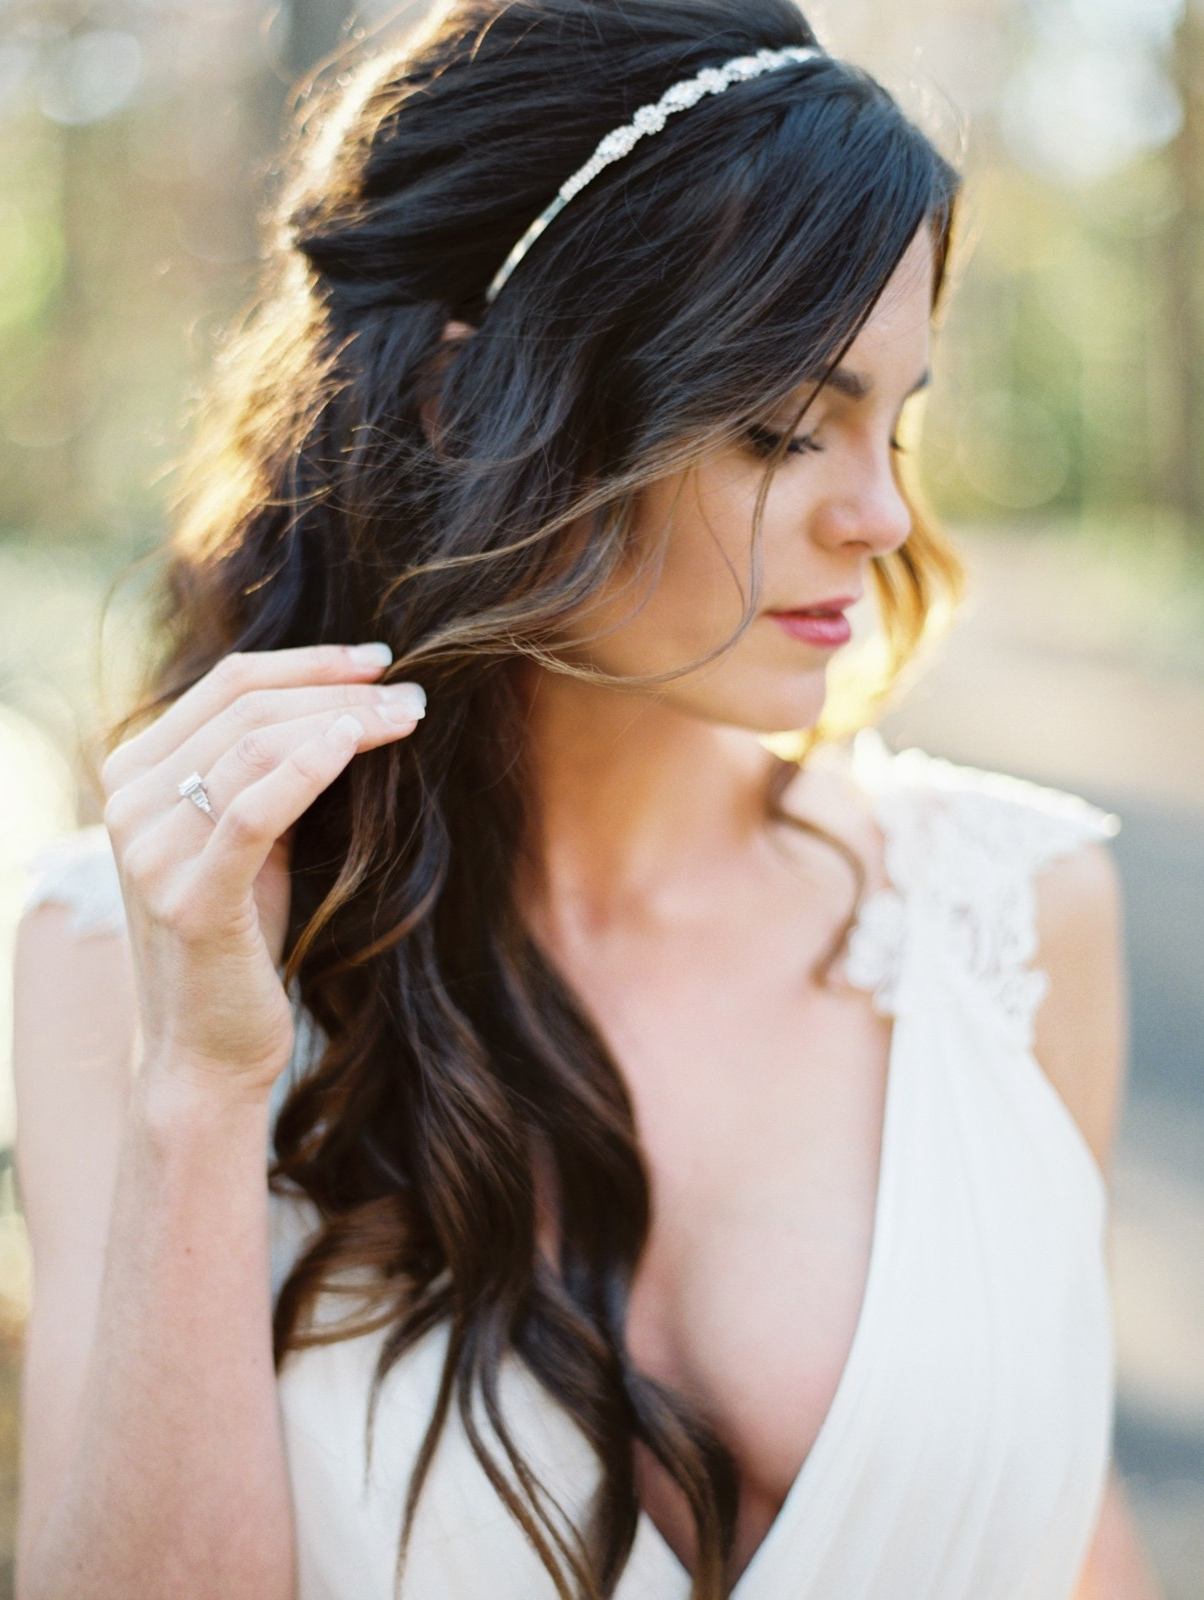 Brides With Regard To Favorite Modern Wedding Hairstyles For Bridesmaids (View 4 of 15)